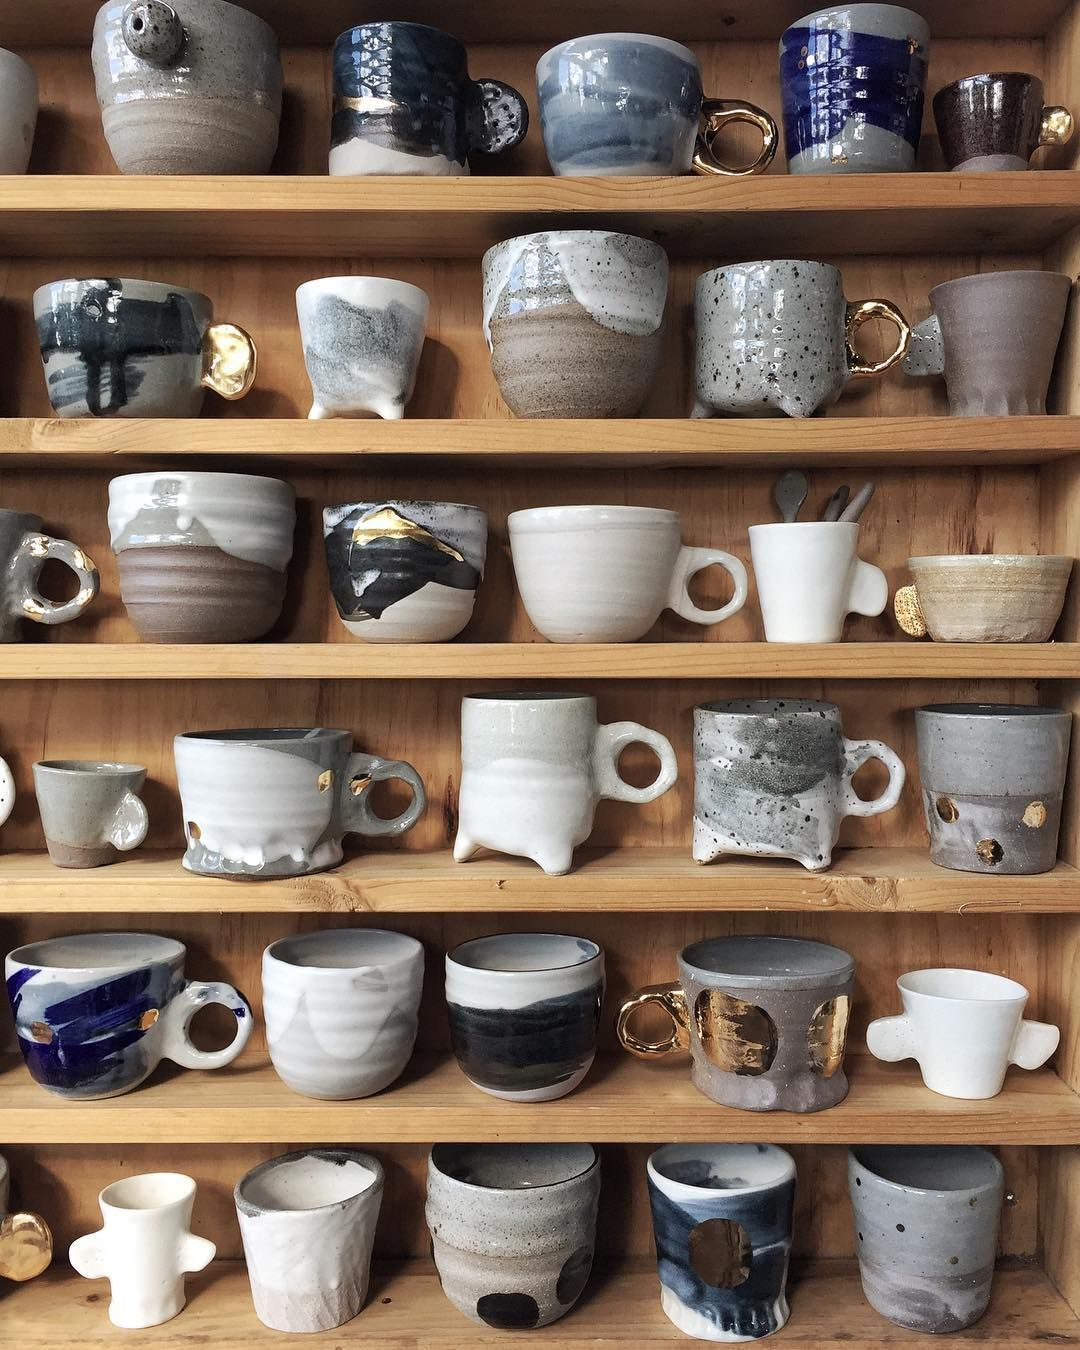 Bridgetbodenham I Like The Rawness And The Imperfection Elegance Meets Clunky Kitchen Interior Inspiration Tableware Design Ceramic Tableware